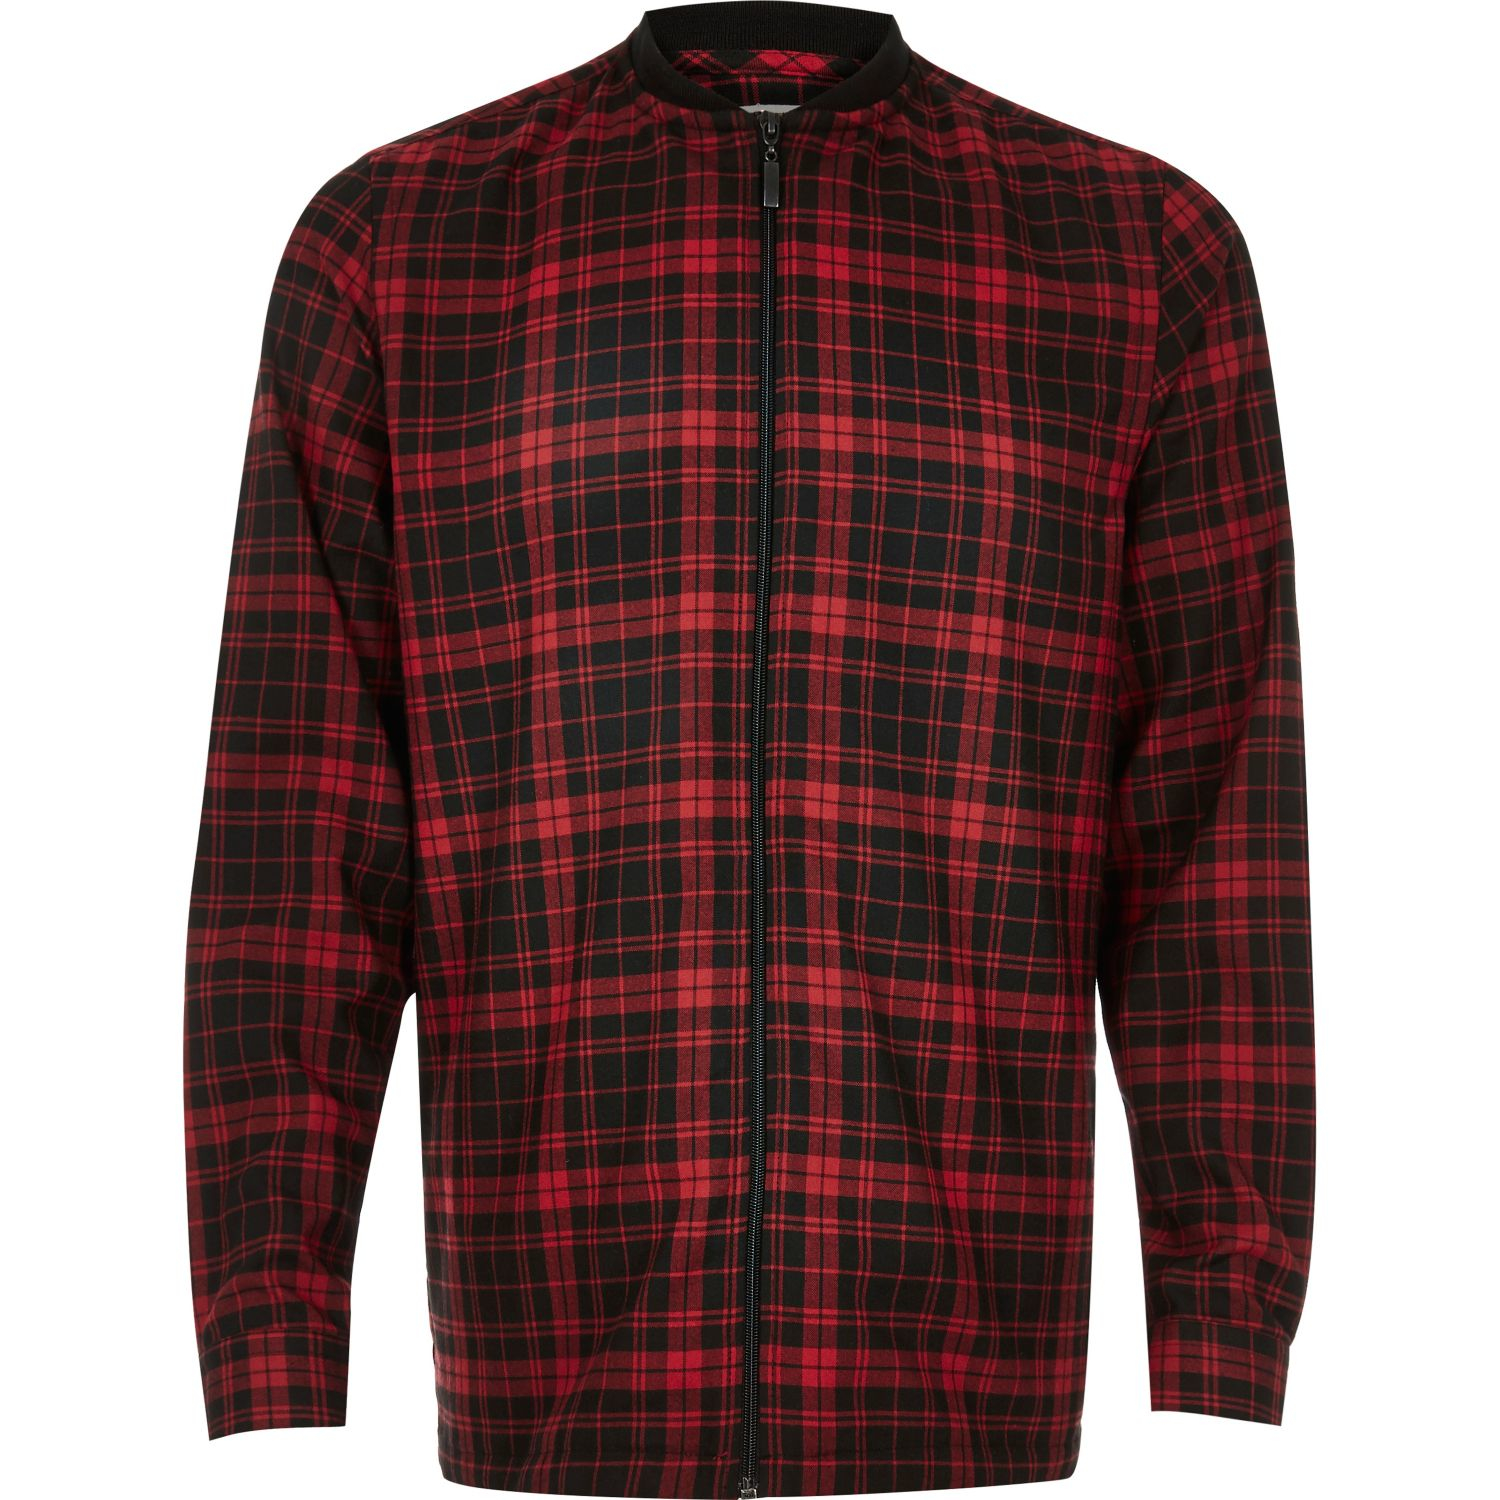 Target / Women / red buffalo plaid shirt (73) Men's Big & Tall Standard Fit Plaid Flannel Shirt - Goodfellow & Co™ Goodfellow & Co™ out of 5 stars with 19 reviews. $ Choose options. Women's Plus Size Plaid Long Sleeve Flannel Shirt - Universal Thread™ Red.